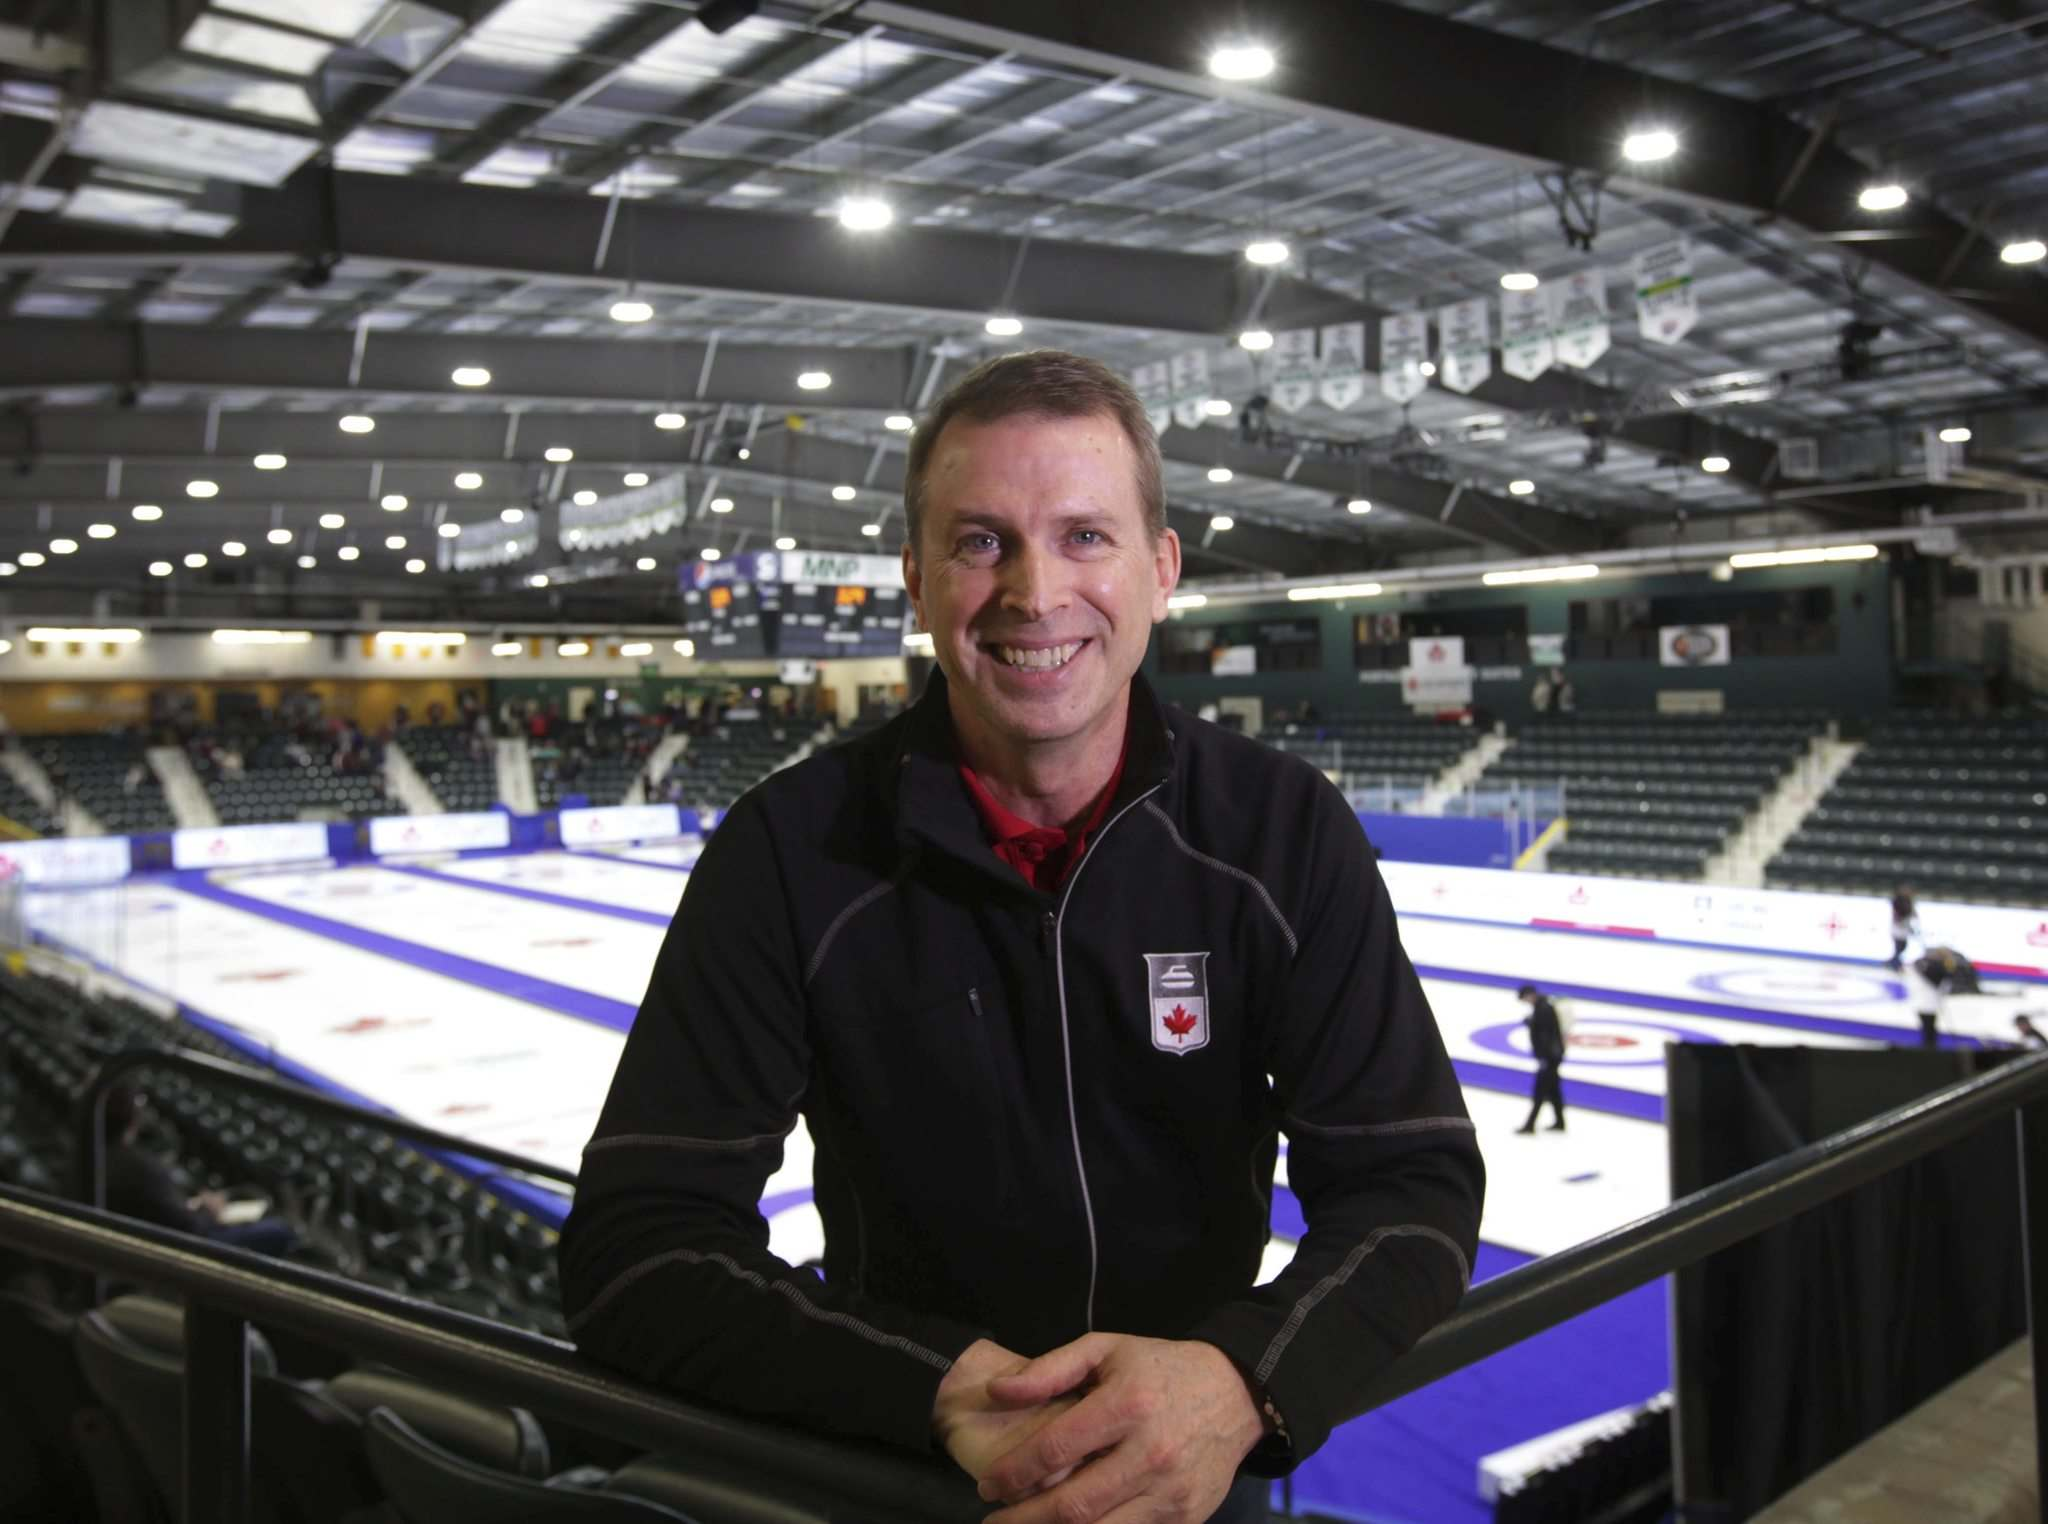 RUTH BONNEVILLE / WINNIPEG FREE PRESS files</p><p>Jeff Stoughton is working with Olympic curlers John Morris and Kaitlyn Lawes.</p></p>